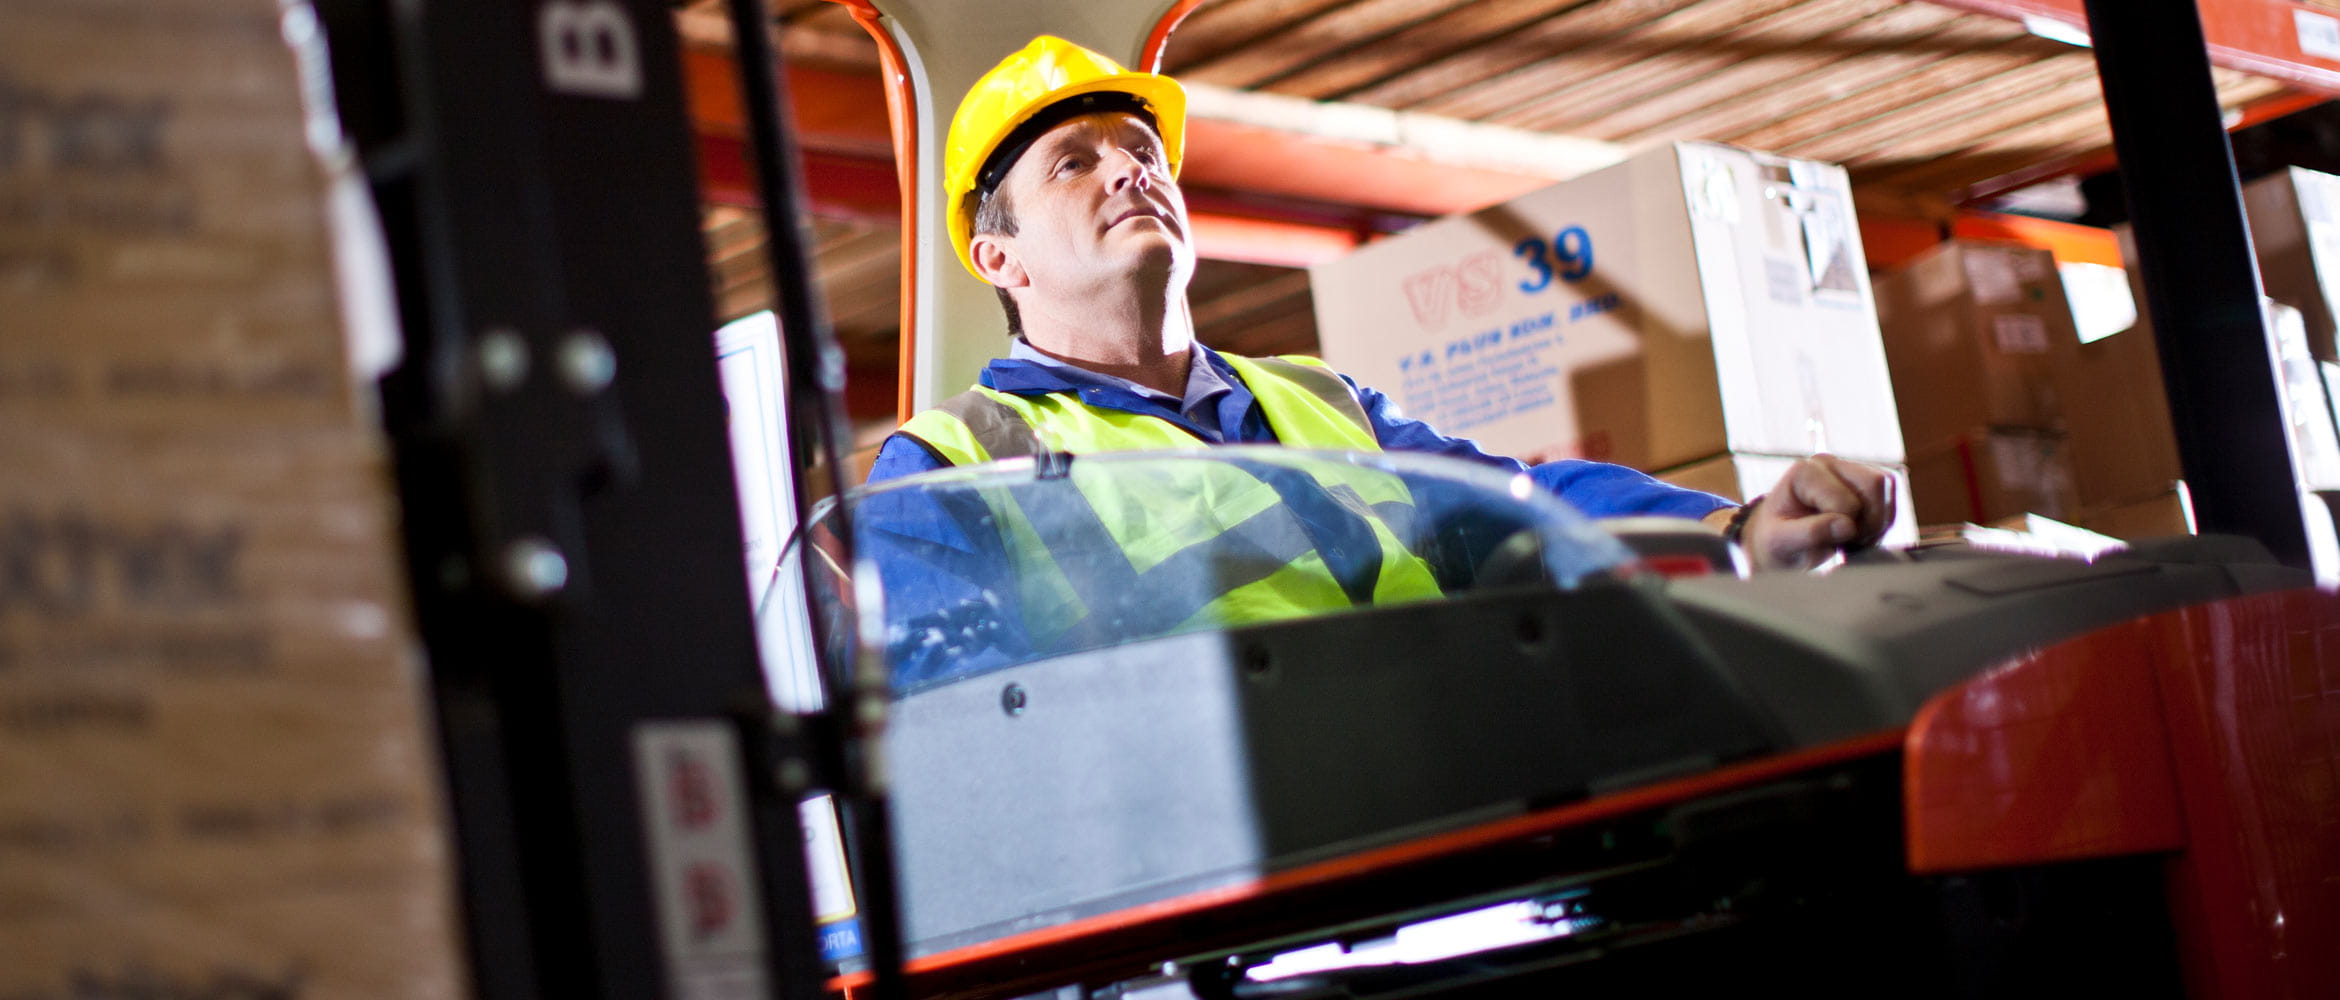 Workman operates a crane in a warehouse